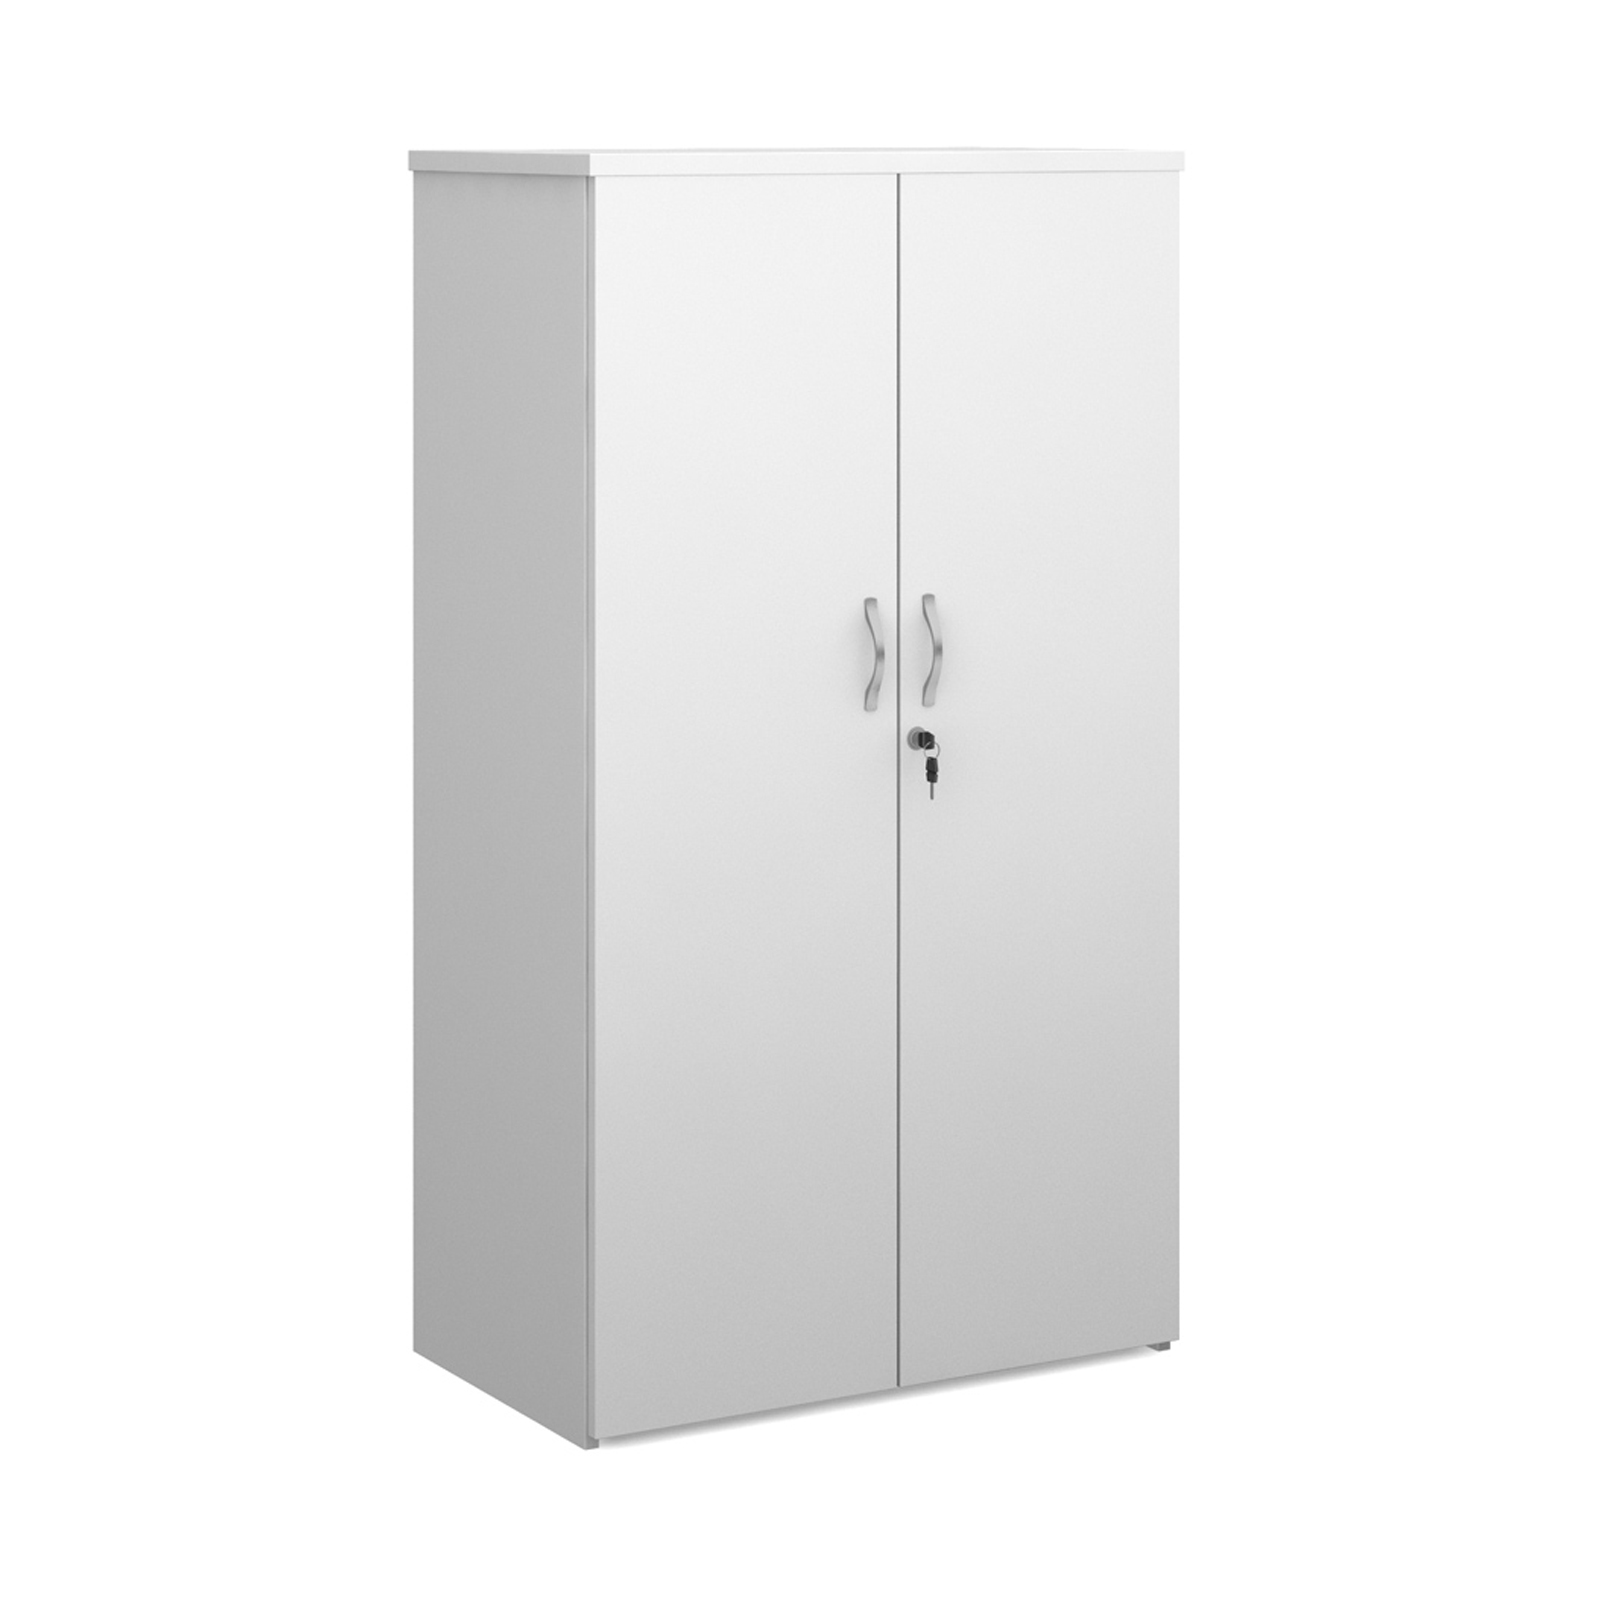 Over 1200mm High Universal double door cupboard 1440mm high with 3 shelves - white